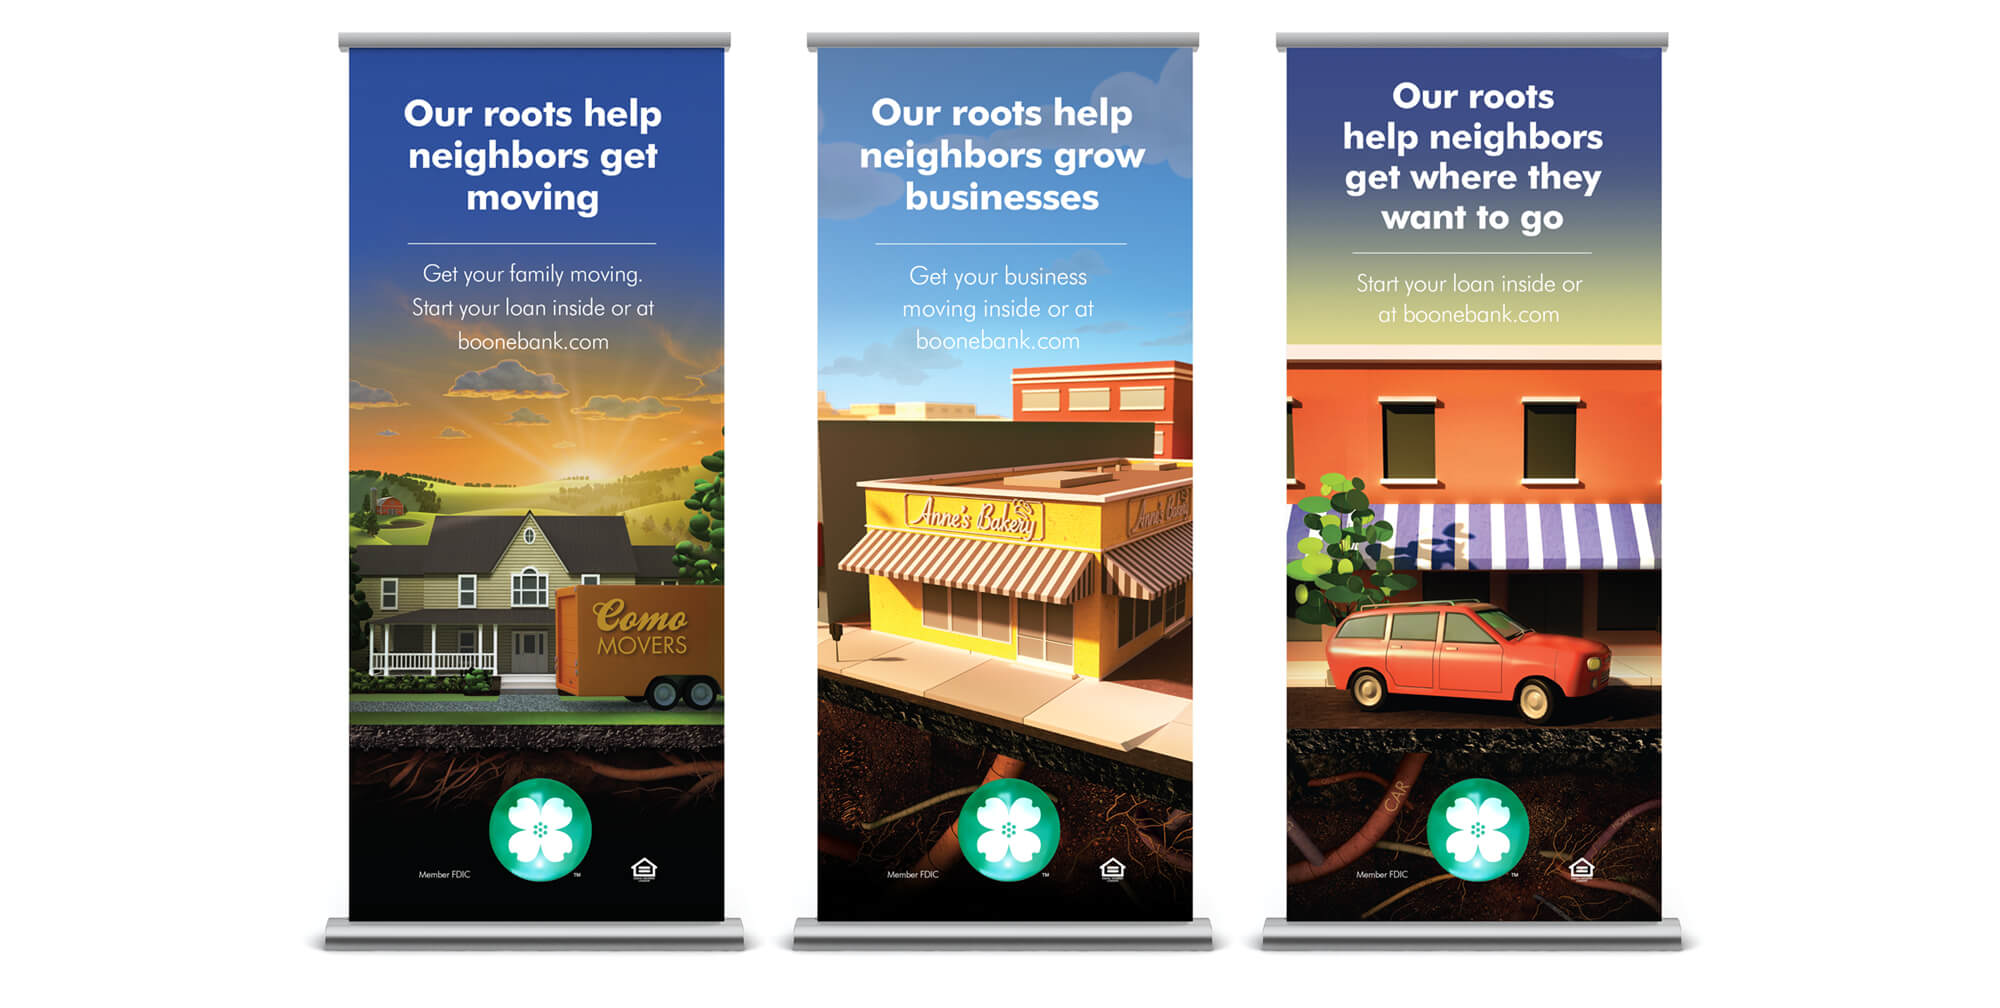 Boone County Bank Roots Campaign retractable banners